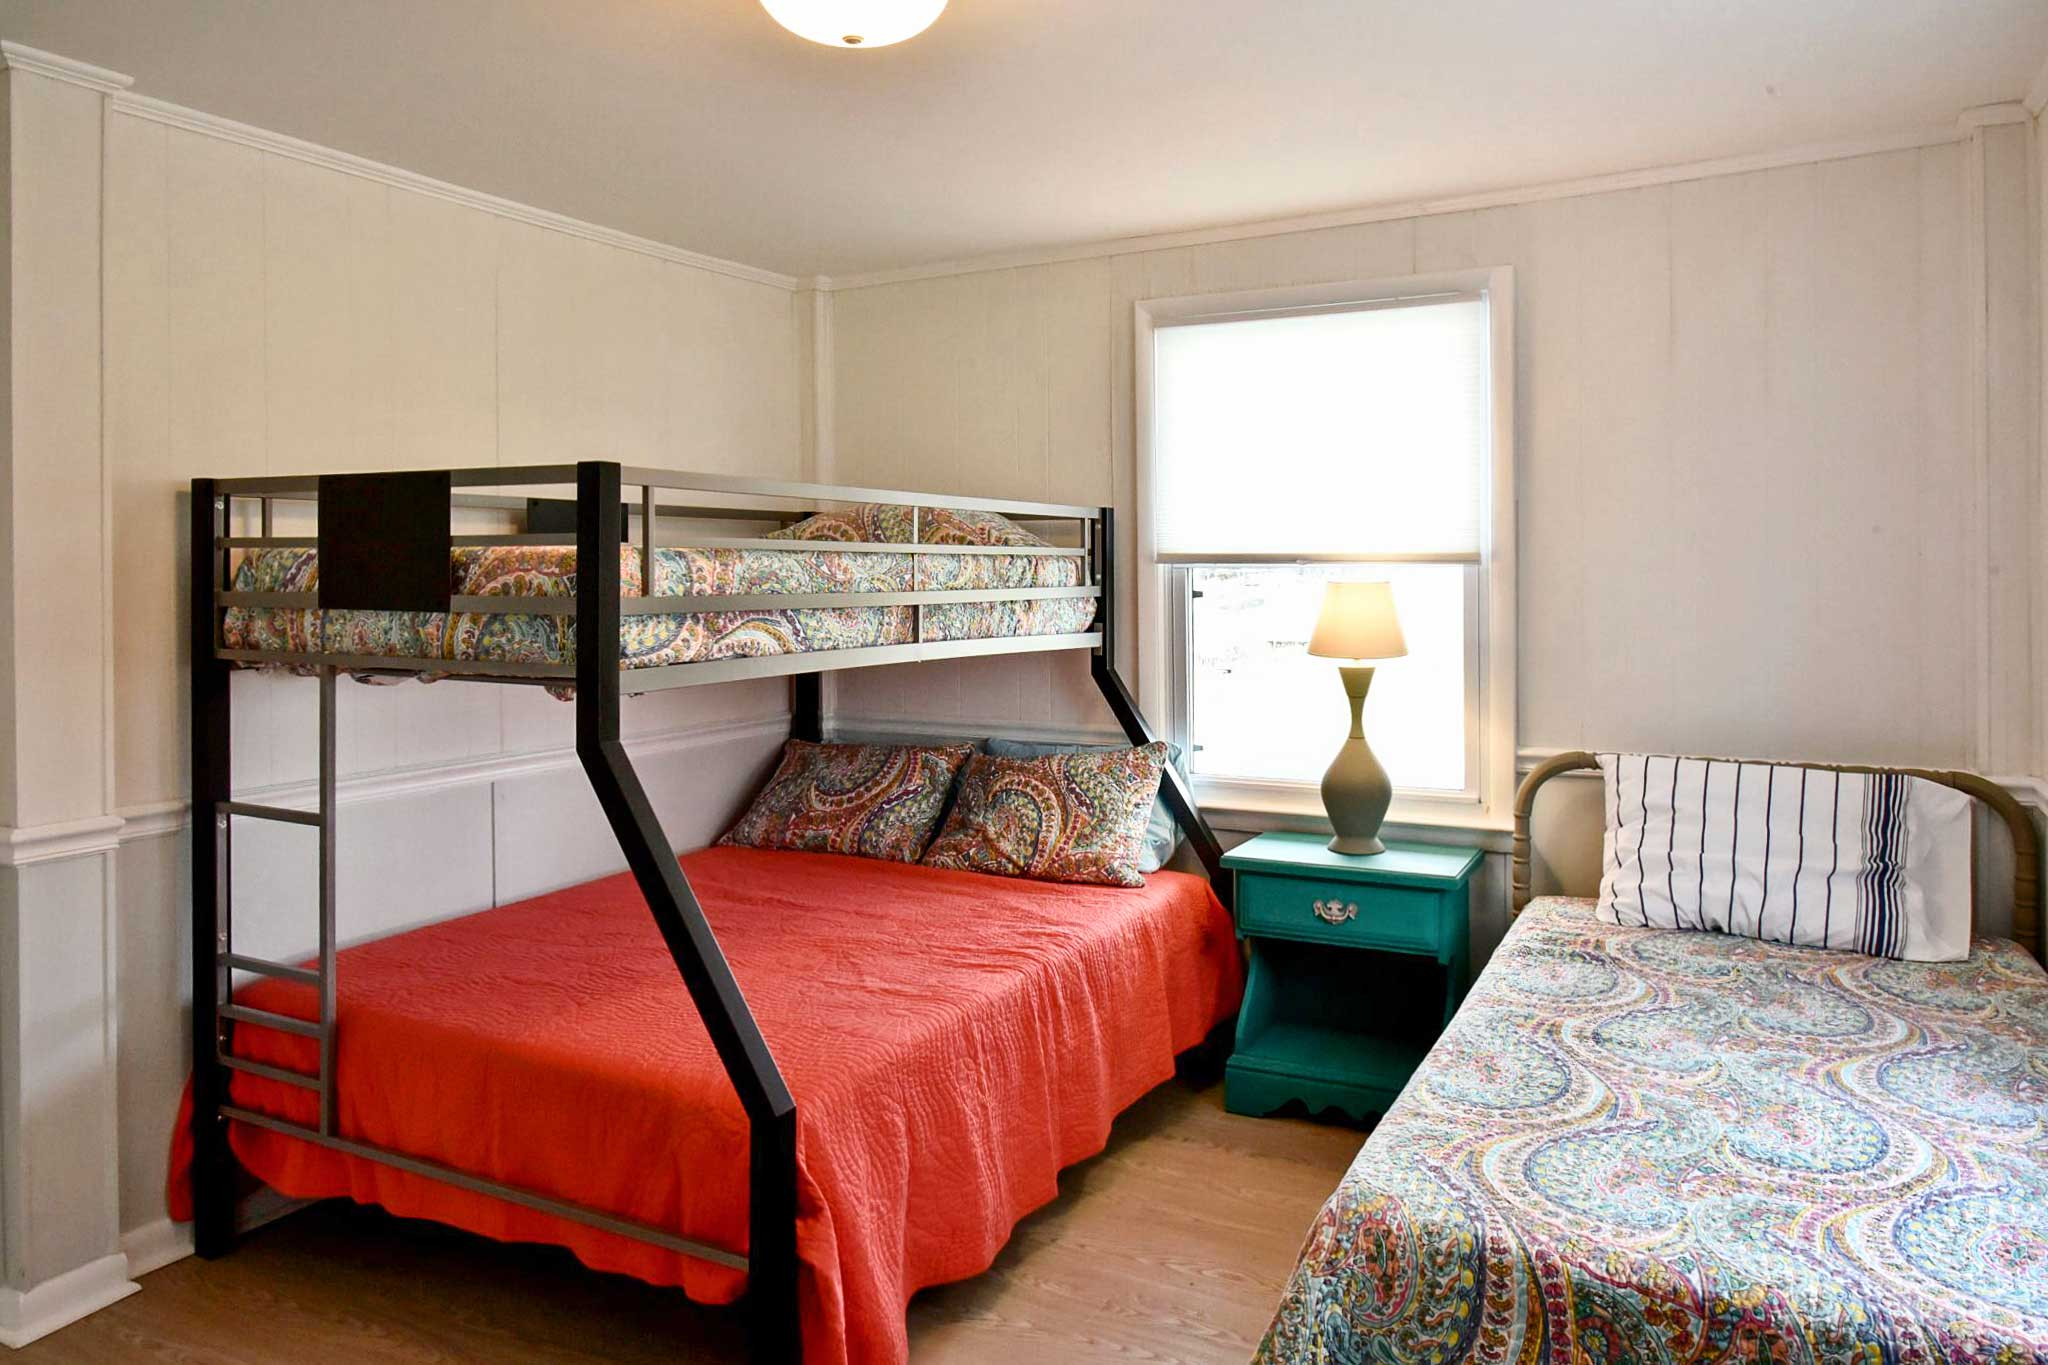 The kids are sure to fall fast asleep in the twin-over-full bunk bed.